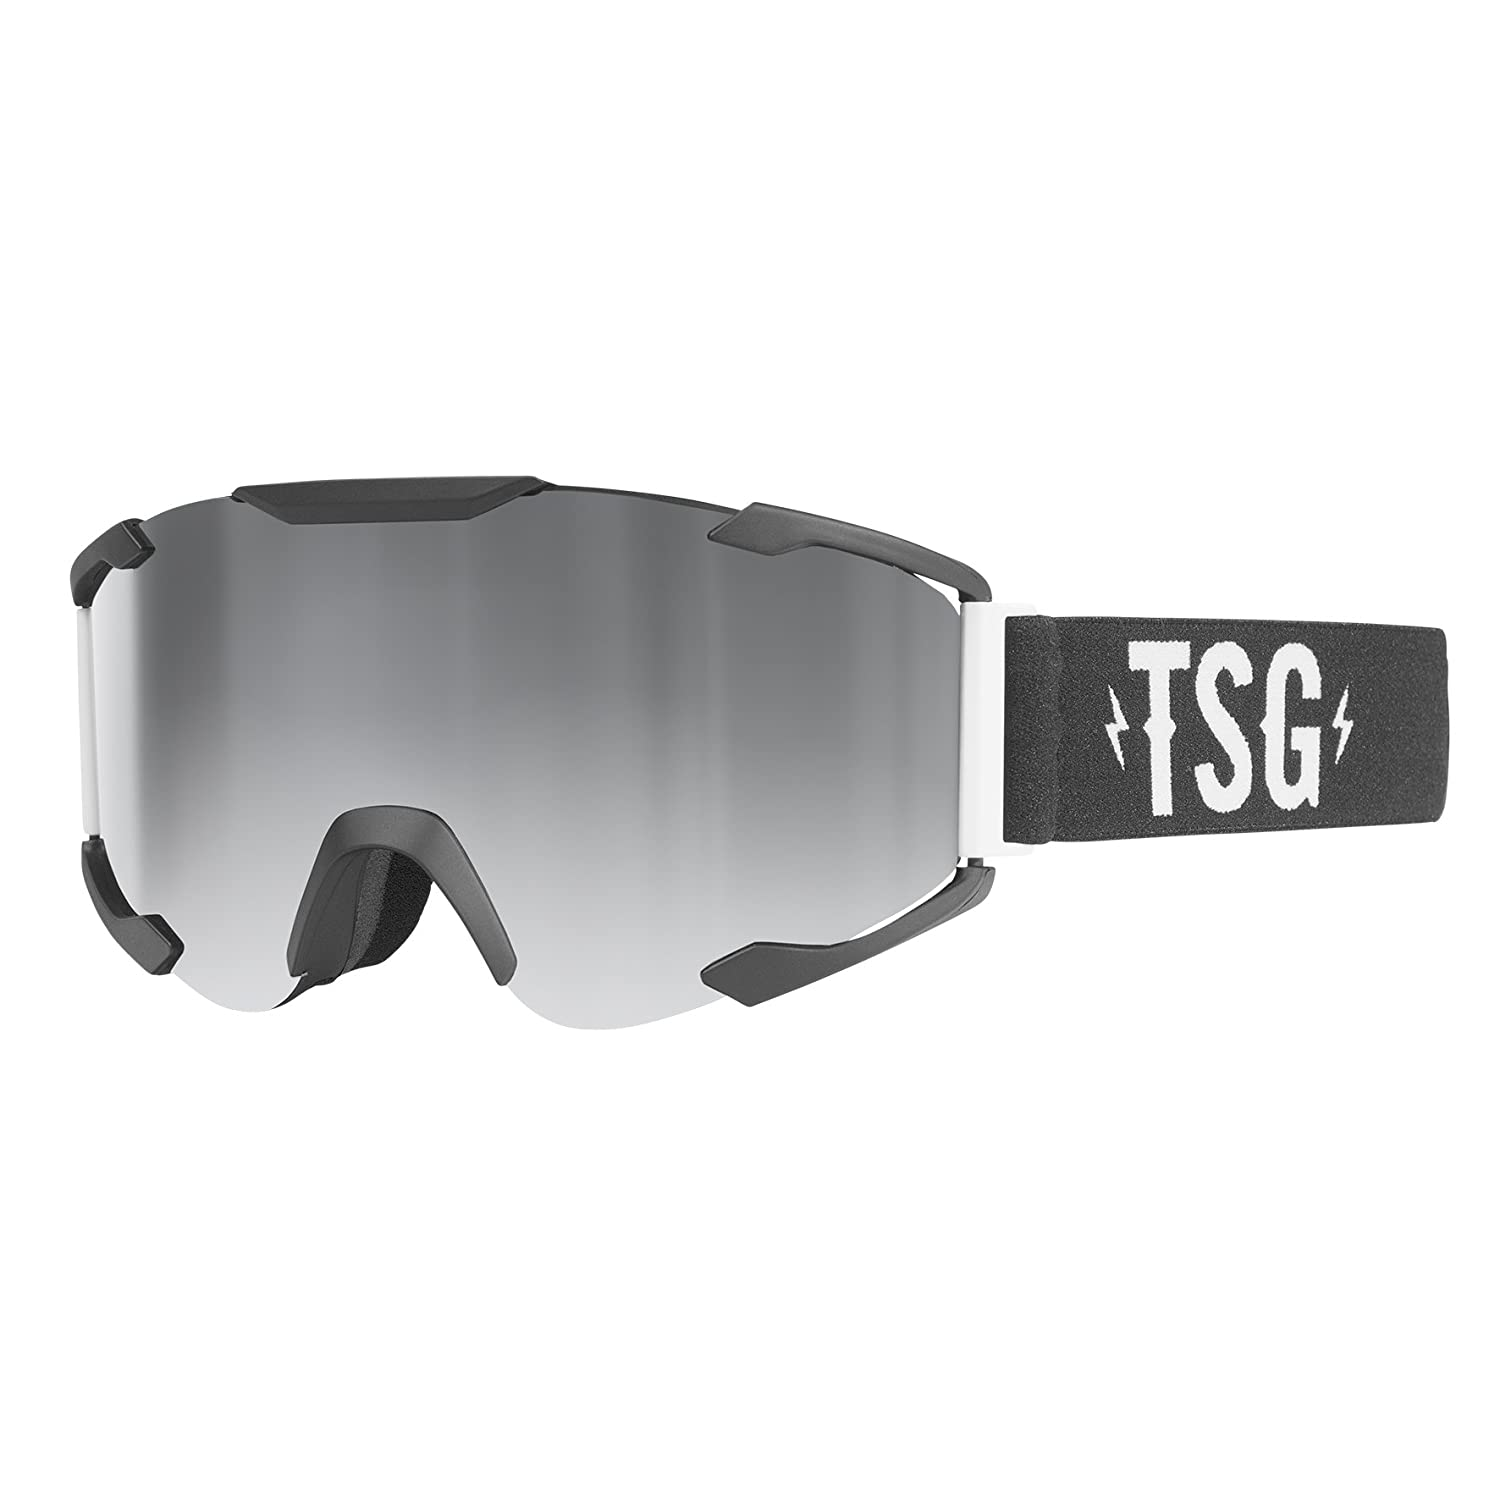 TSG Crossbrille Presto Chopper Anti-Fog